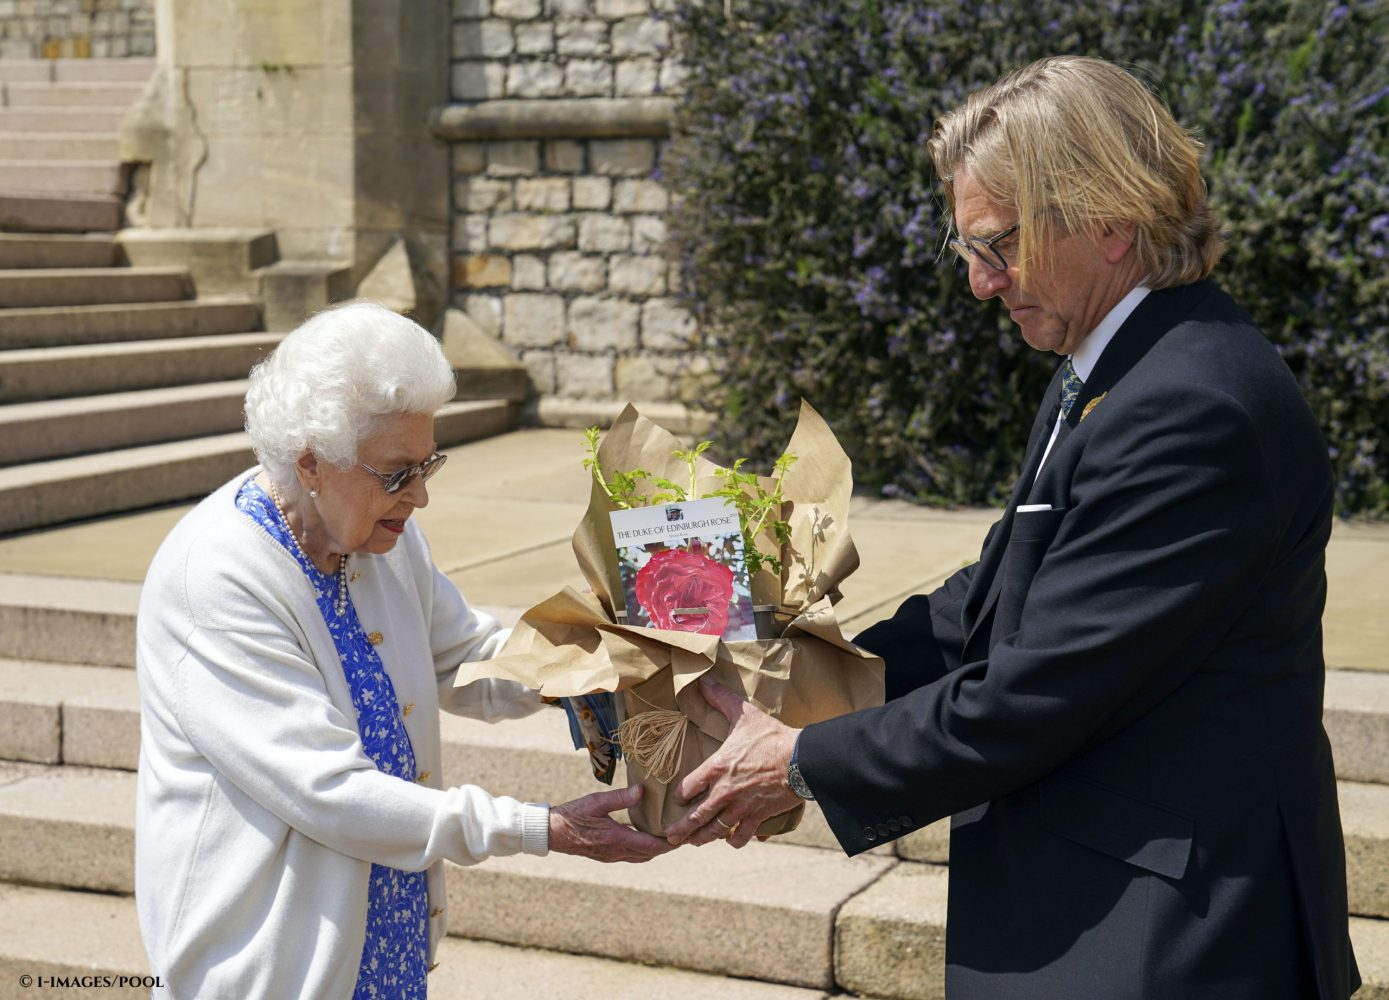 The Queen Elizabeth II receives a Duke of Edinburgh rose, from Keith Weed, President of the Royal Horticultural Society